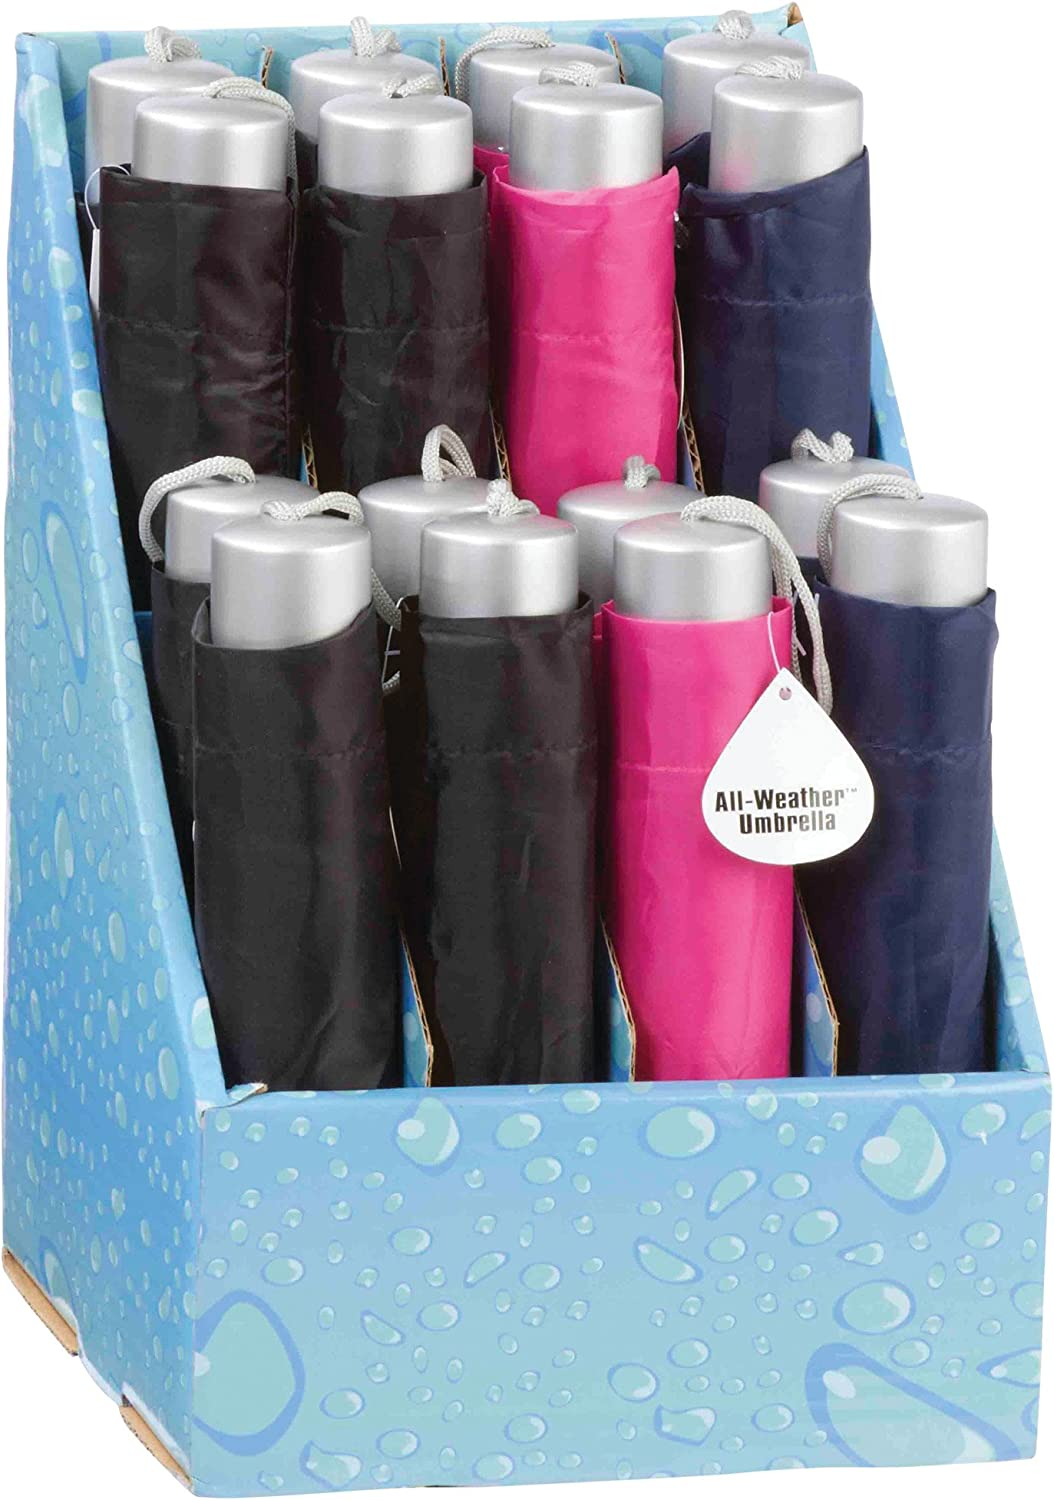 All-Weather? 16pc 42  Umbrellas in Countertop Display